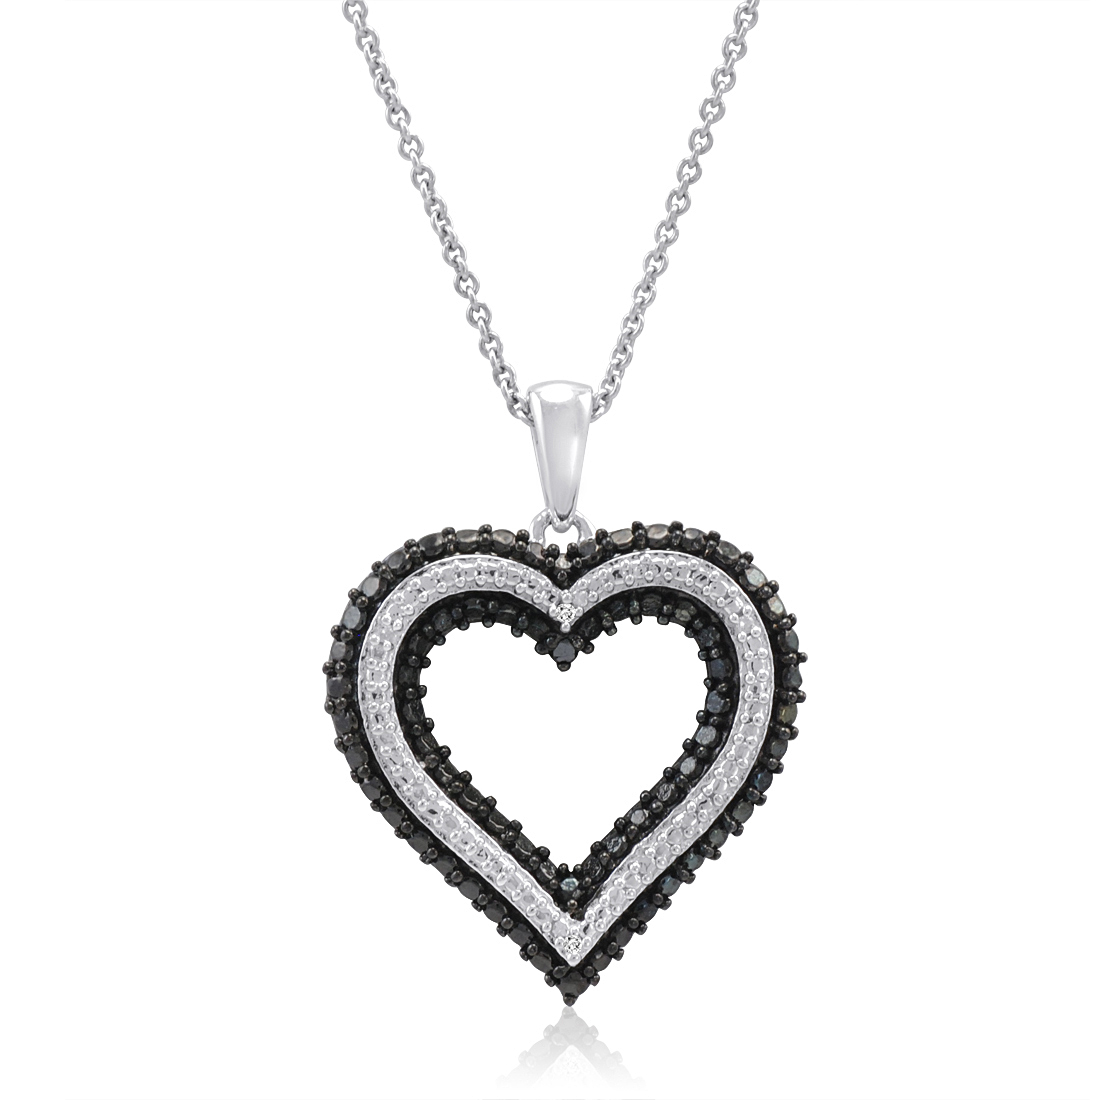 Black and White Diamond Heart Pendant Necklace in 925 Sterling Silver